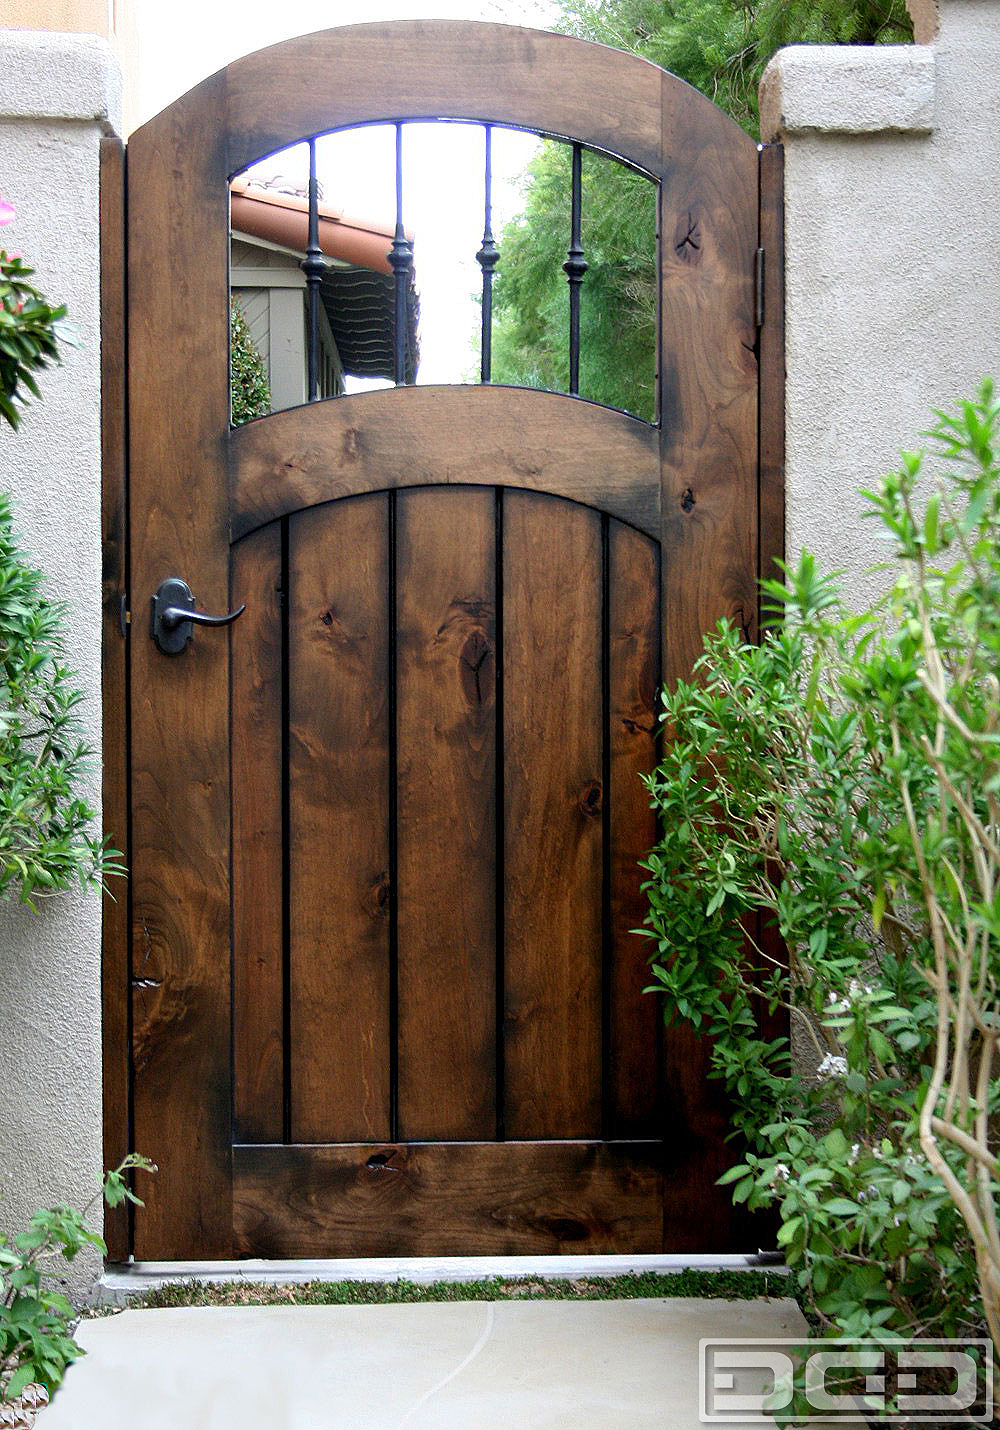 Architectural gates 12 custom designer pedestrian gate for Garden gate designs wood rustic